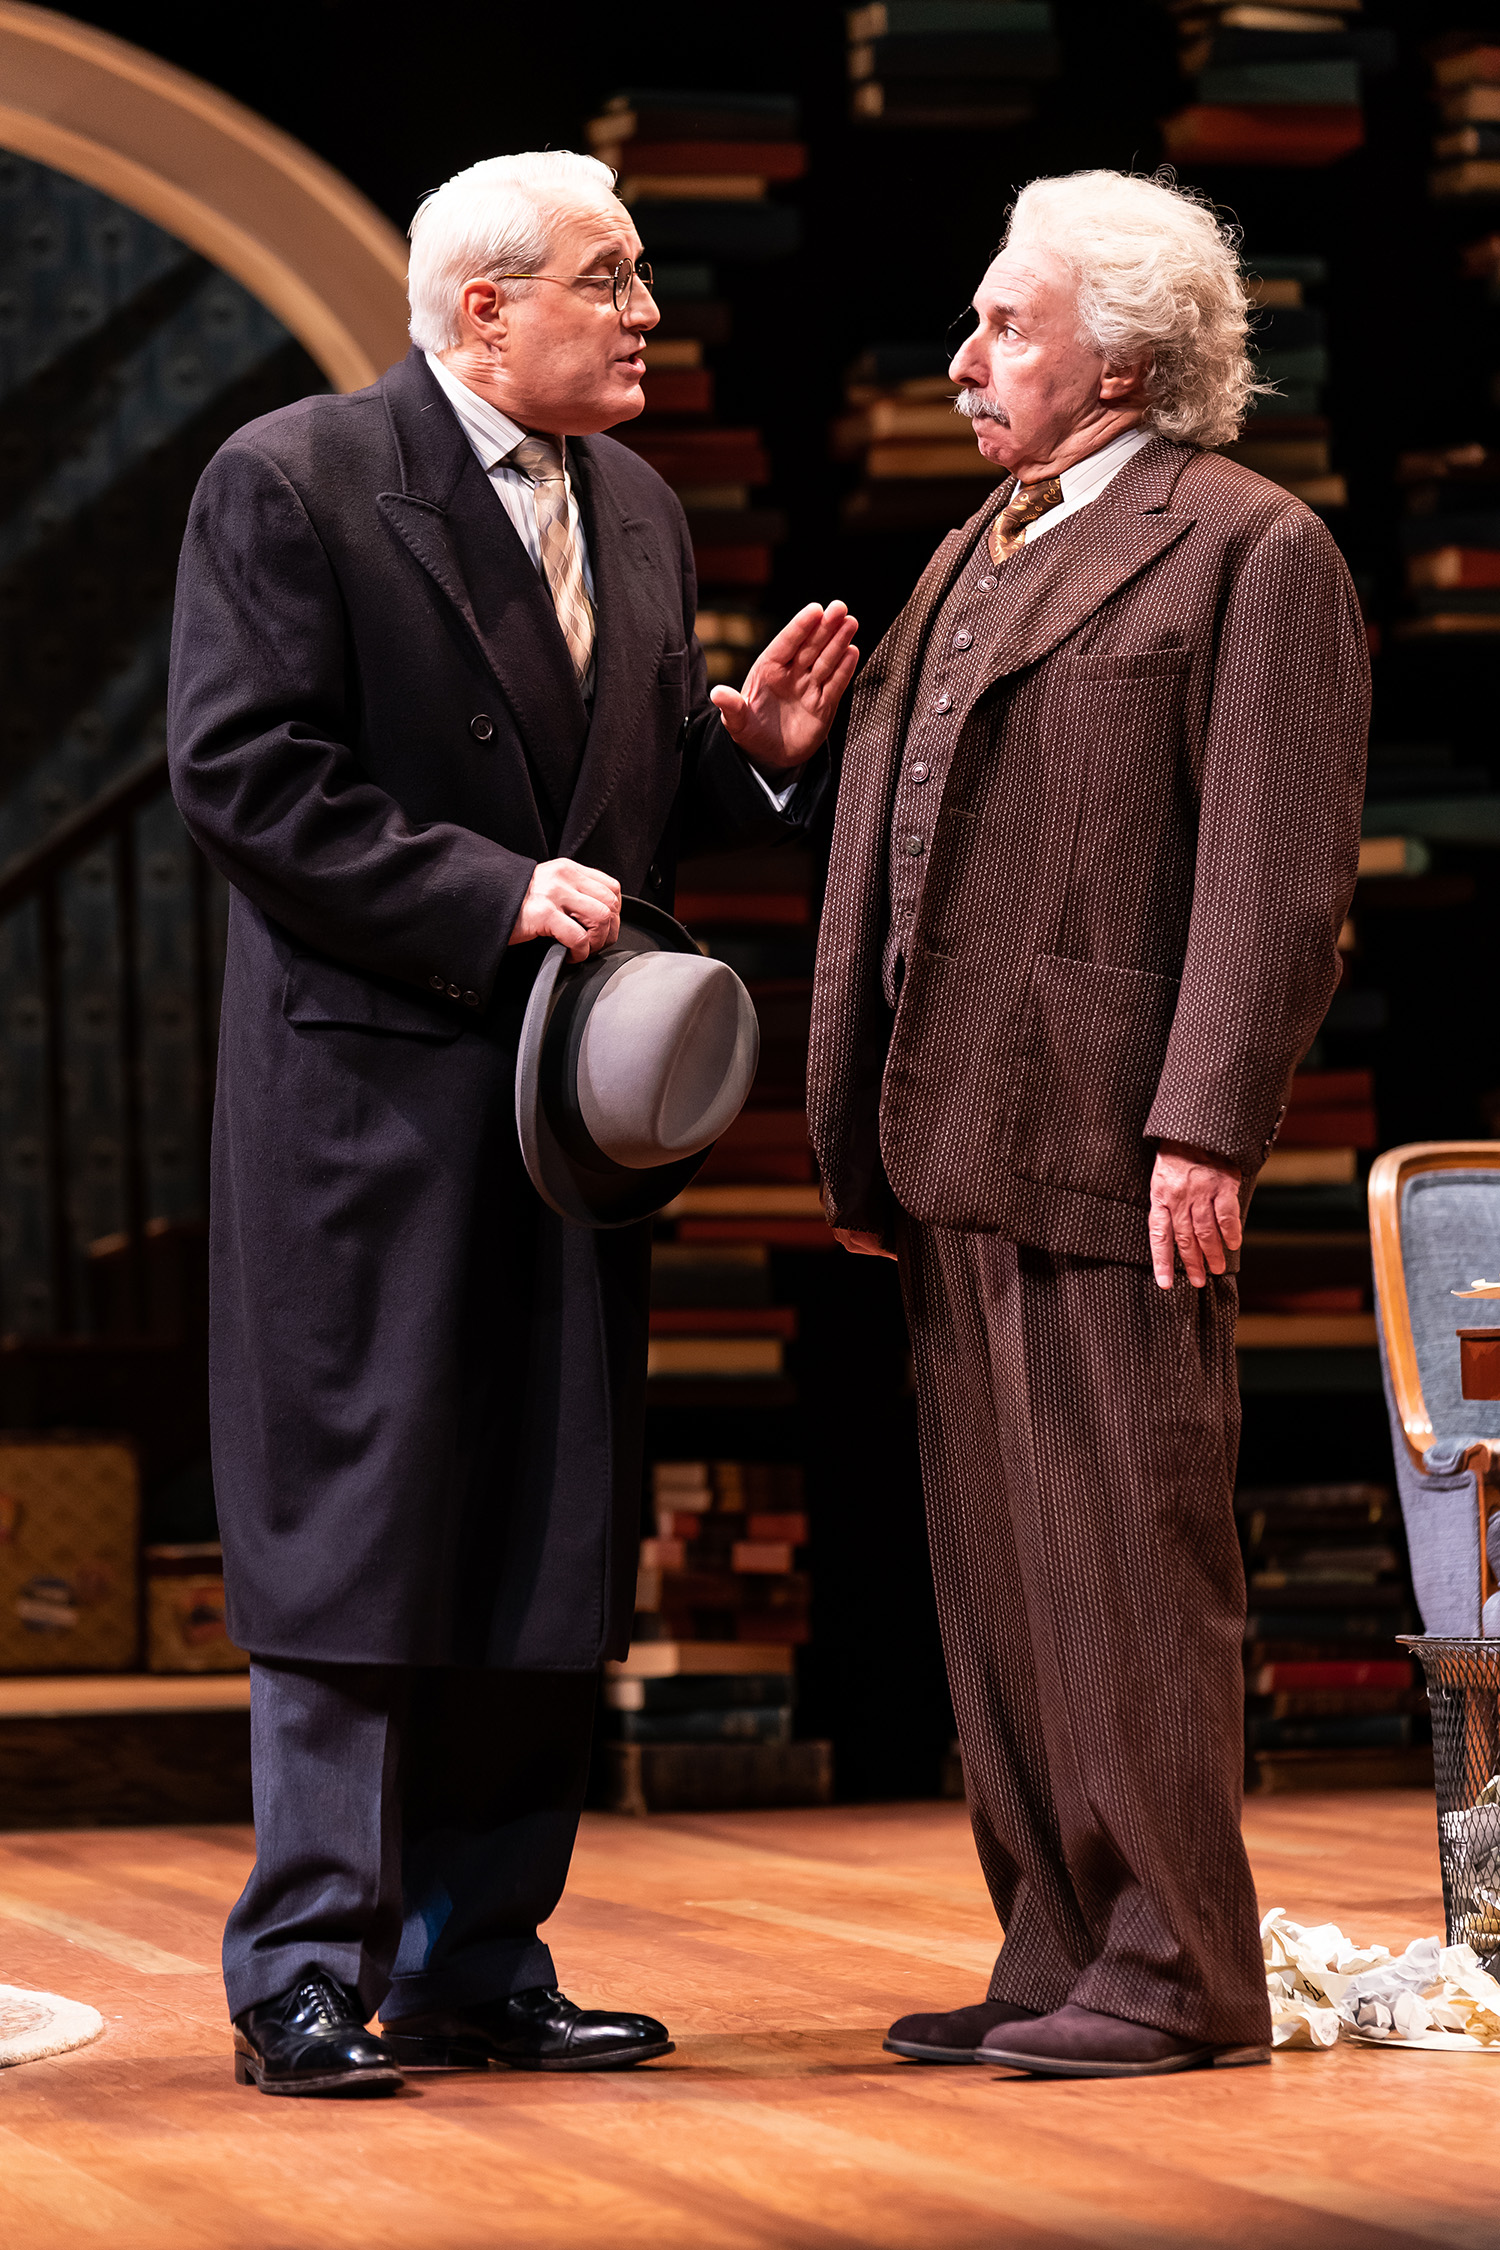 """Michael Russotto as Abraham Flexner and Christopher Bloch as Albert Einstein in the Ford's Theatre production of Deborah Brevoort's """"My Lord, What a Night"""". (Photo by Scott Suchman)"""